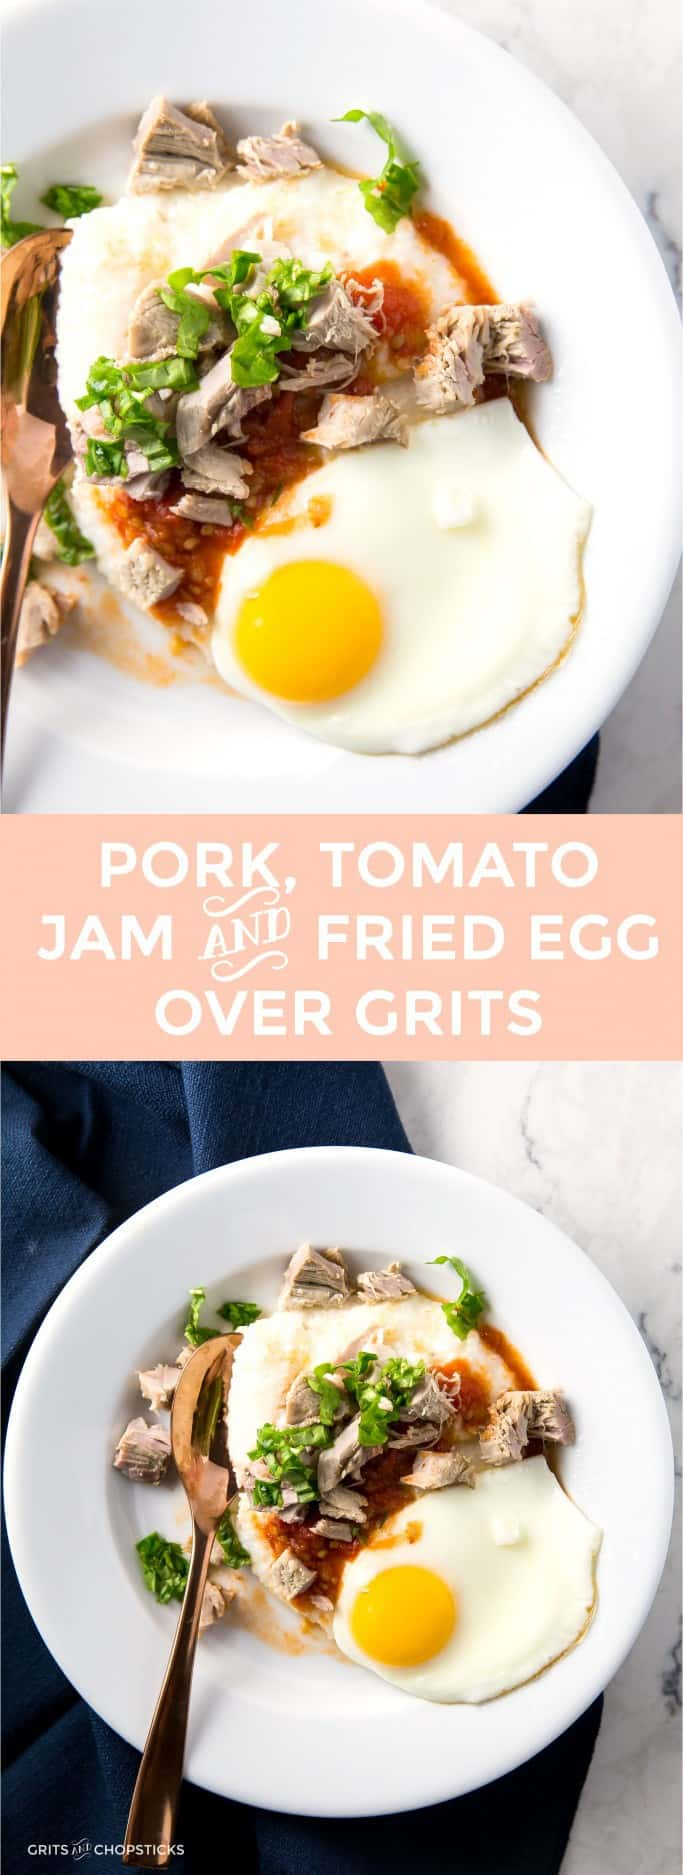 Pork and grits with heirloom tomato jam, a fried egg and basil. It's sophisticated Southern in one bite, but easy enough to pull off on a weeknight (with a little advance planning)